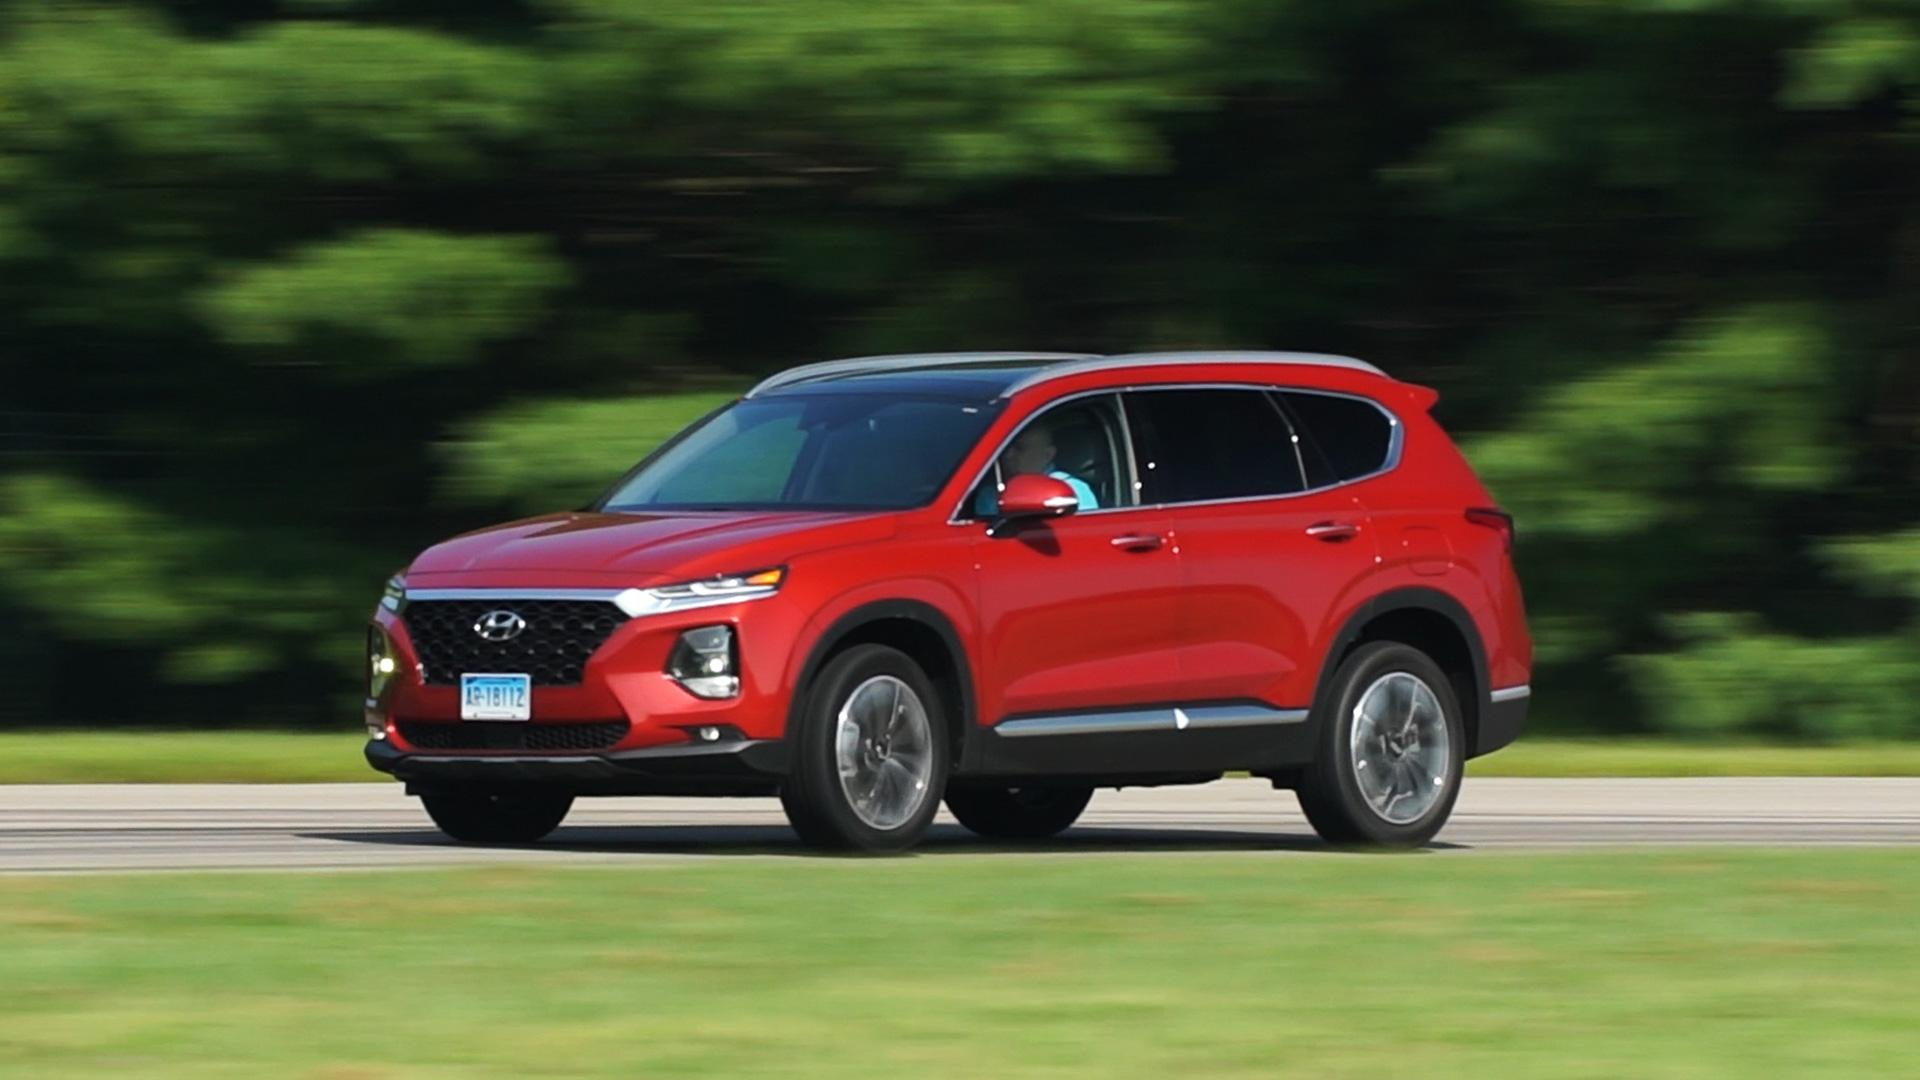 2019 Hyundai Santa Fe Review - Consumer Reports